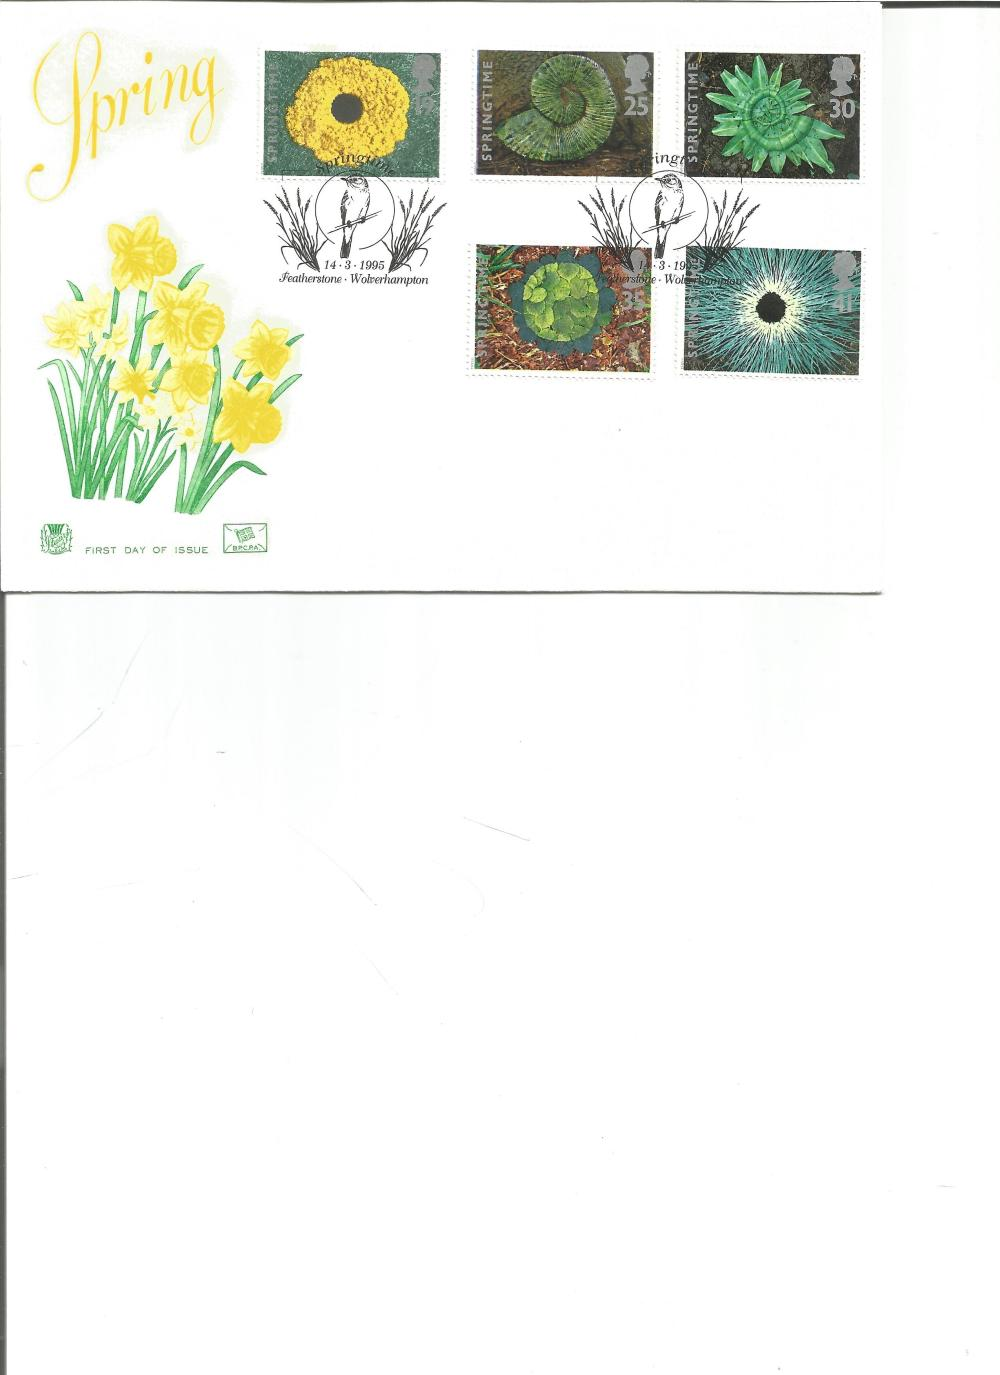 FDC Spring c/w set of five commemorative stamps double PM Springtime 14. 3. 95 Featherstone,